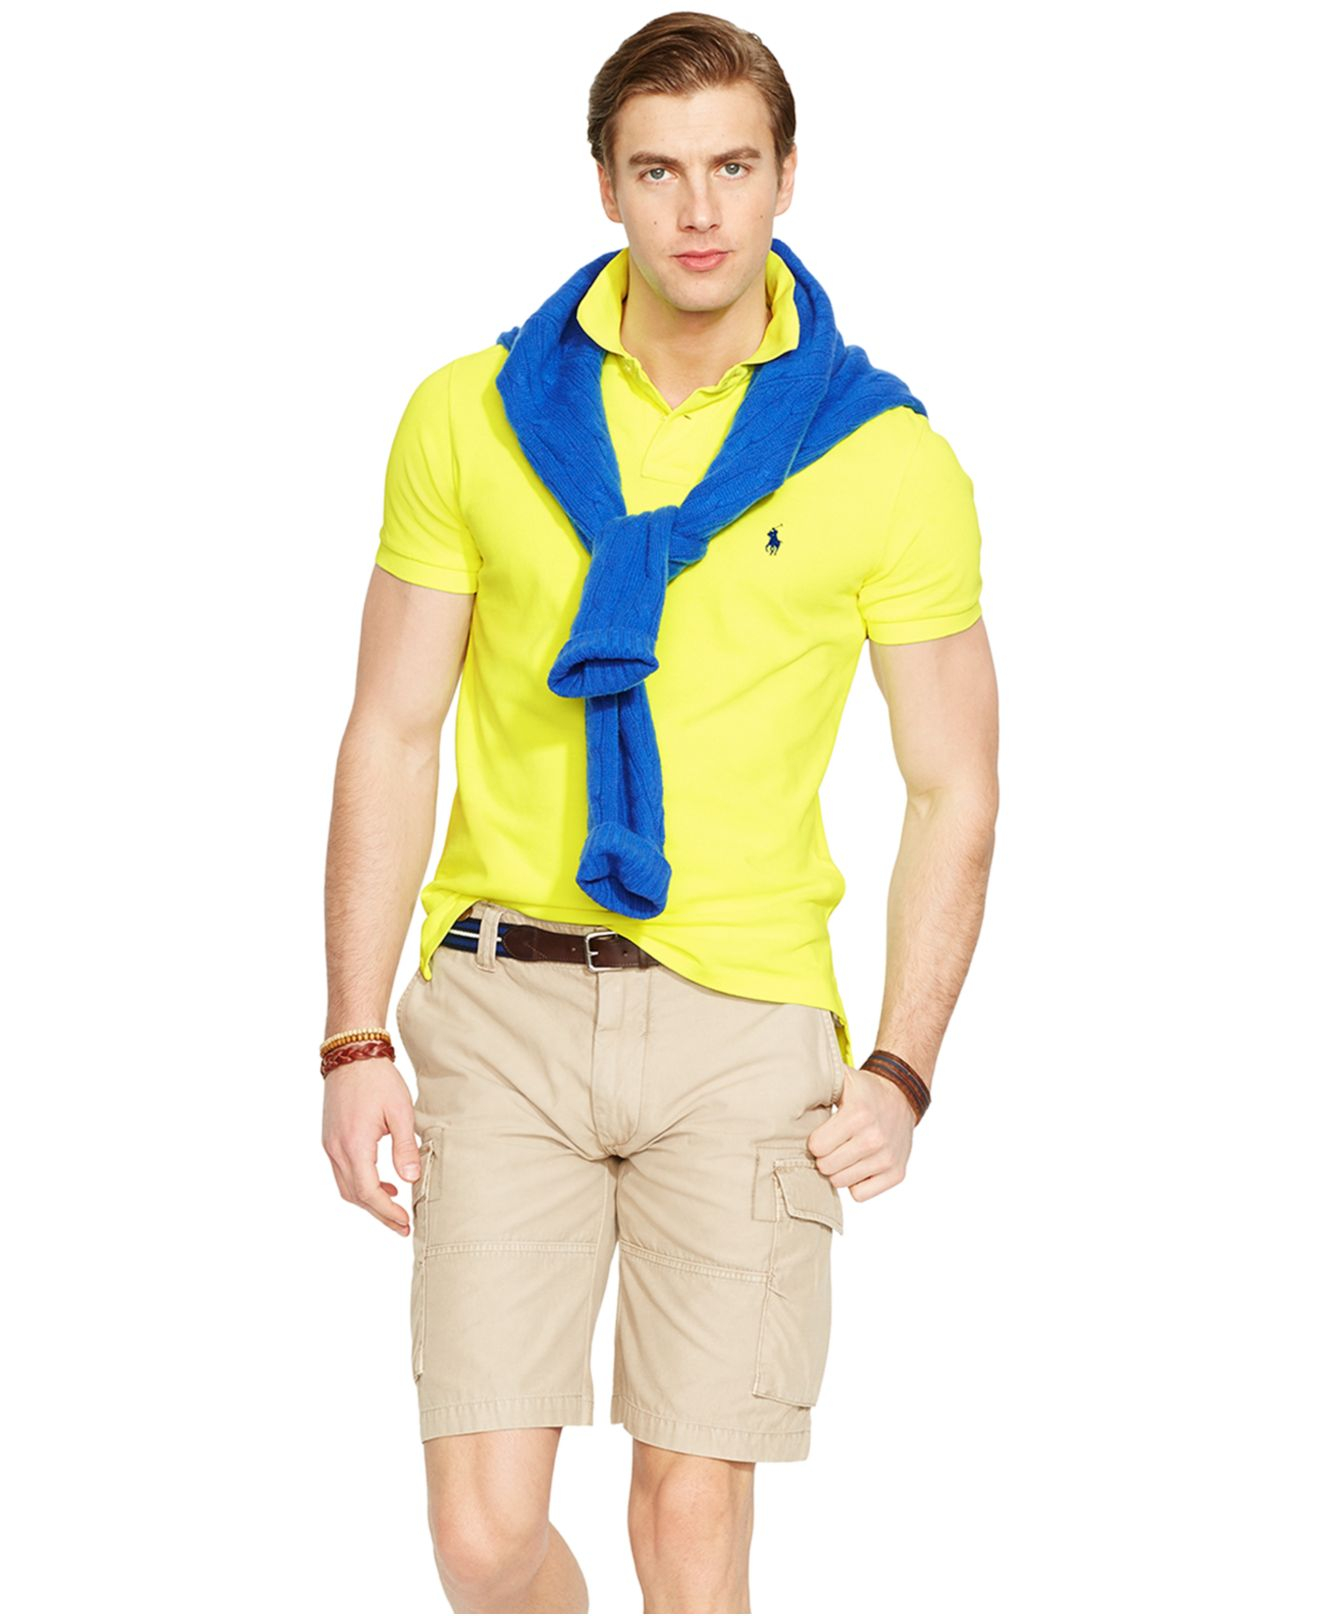 Polo ralph lauren Custom-fit Neon Mesh Polo Shirt in Yellow for Men (Safety